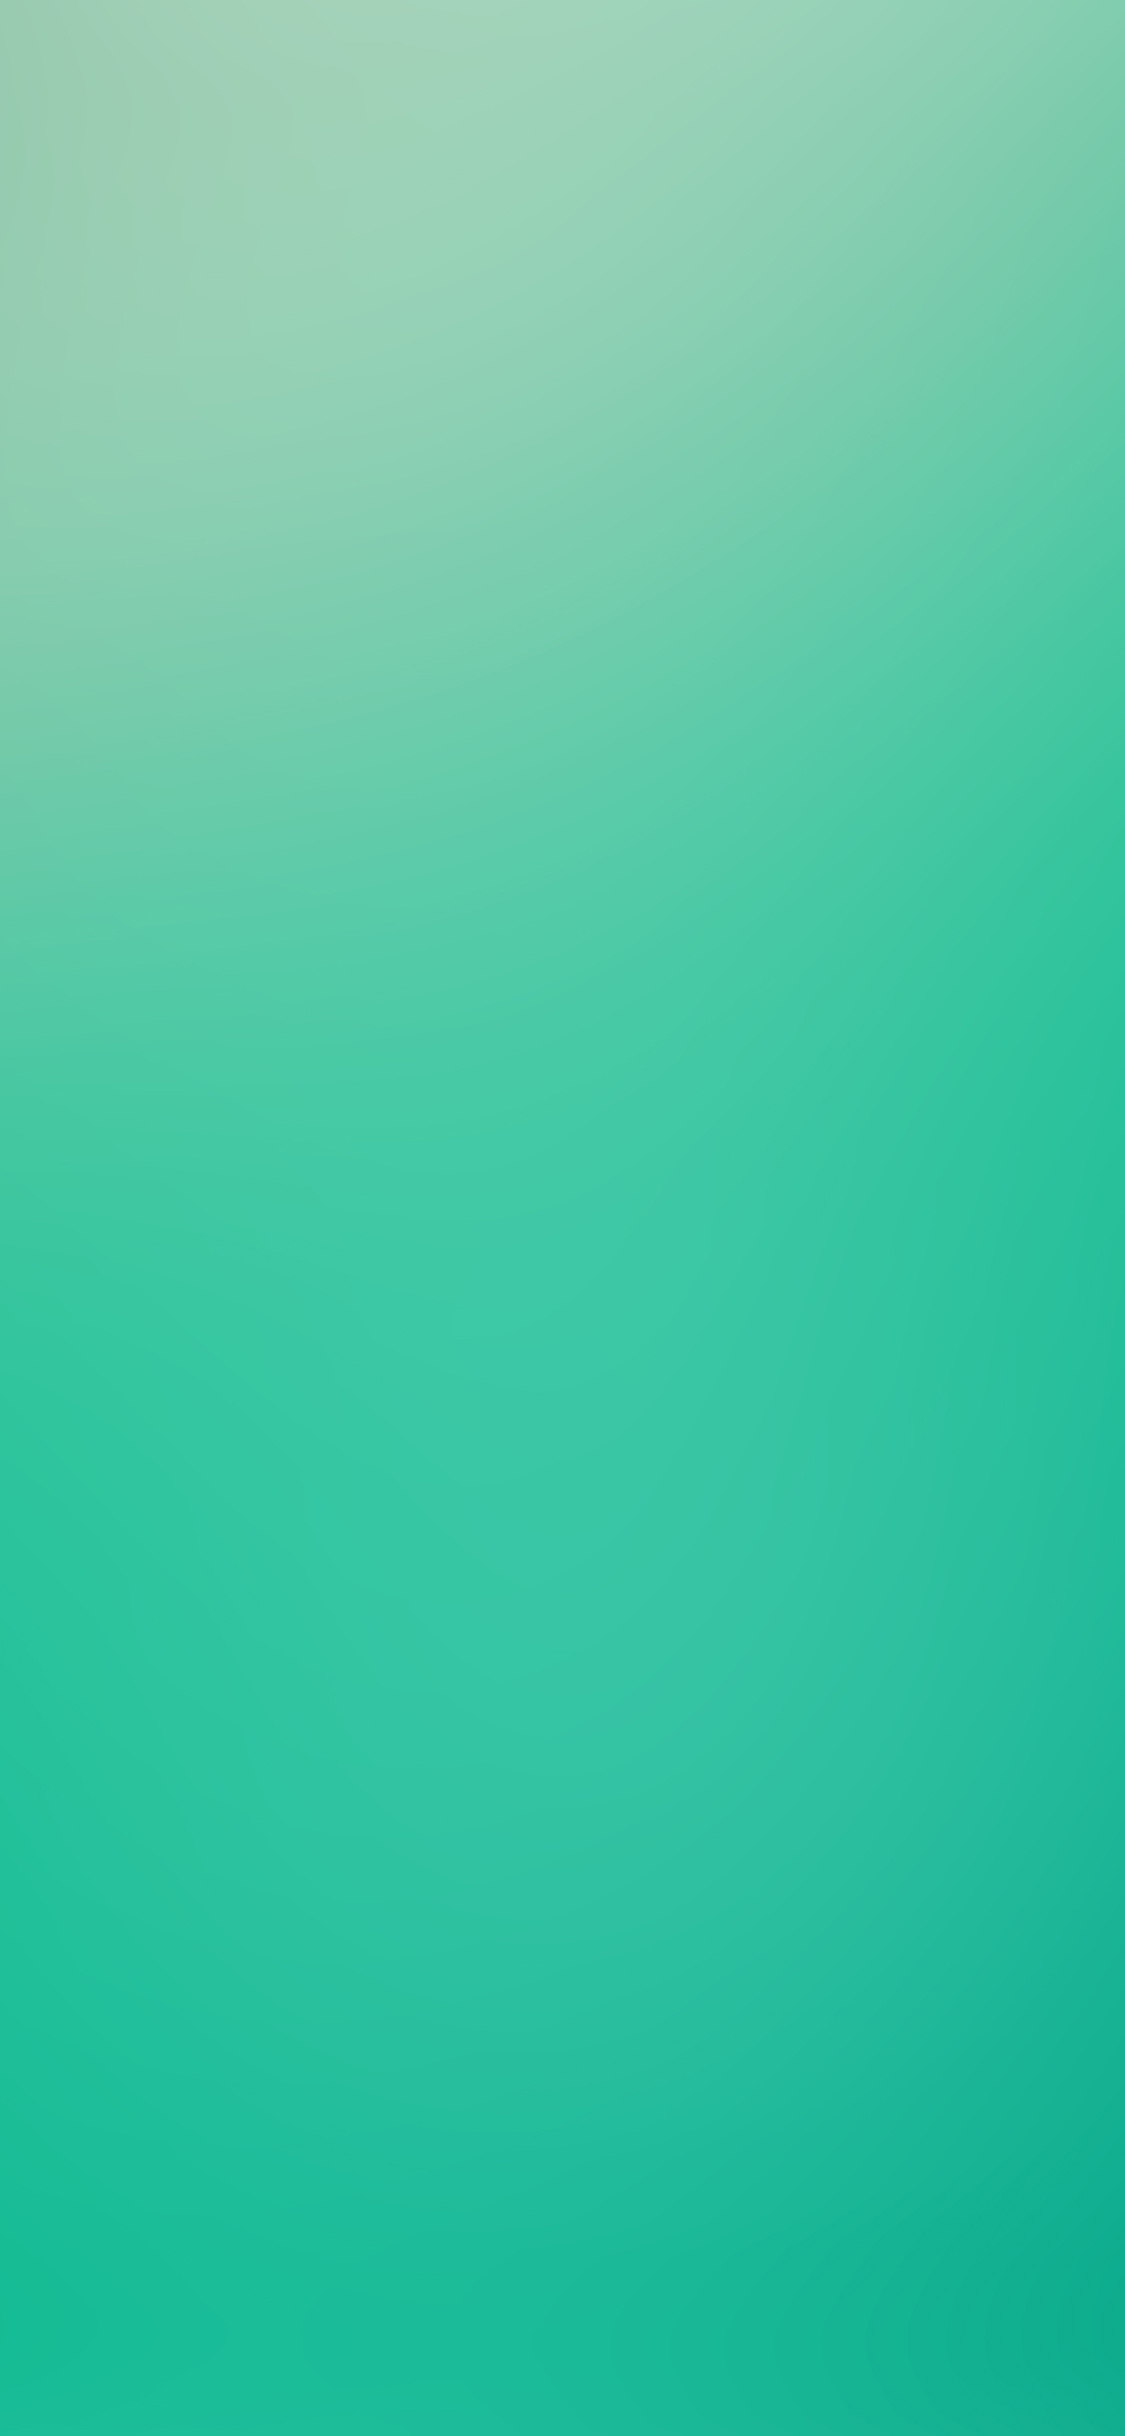 iPhoneXpapers.com-Apple-iPhone-wallpaper-si79-soft-spring-green-emerald-gradation-blur